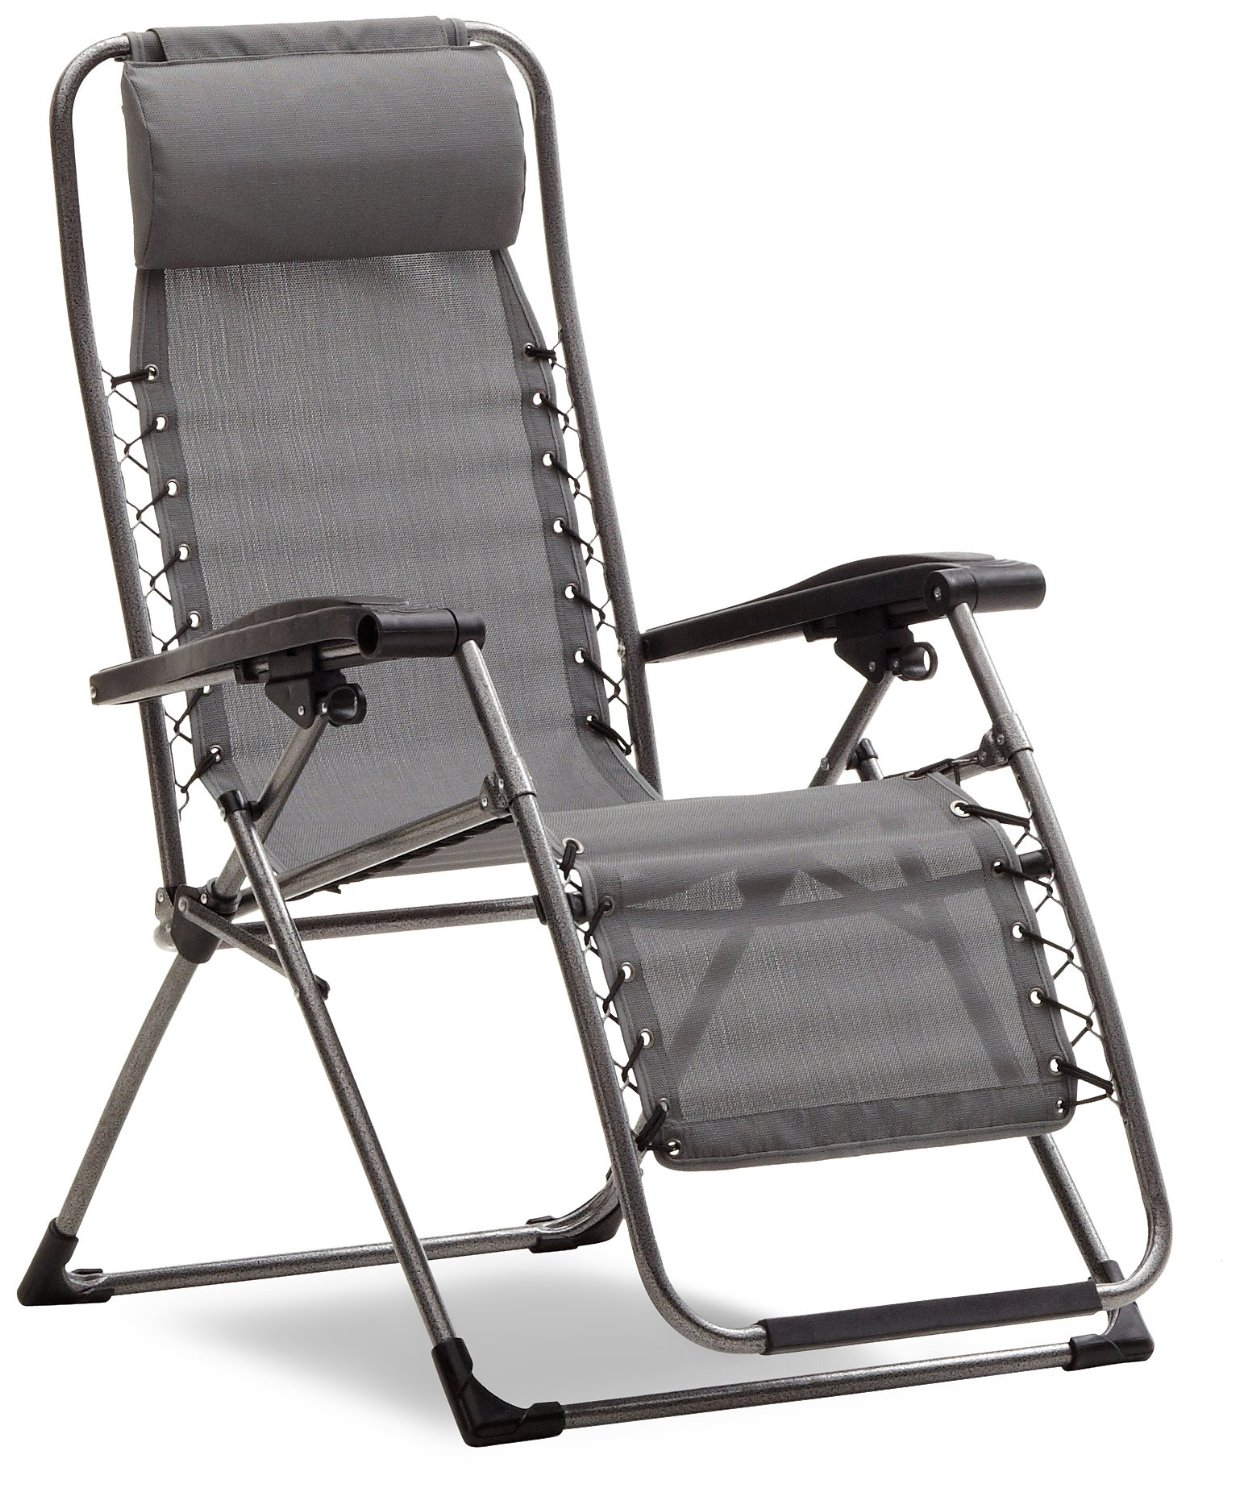 Strathwood Anti-Gravity Adjustable Recliners $49.99 From